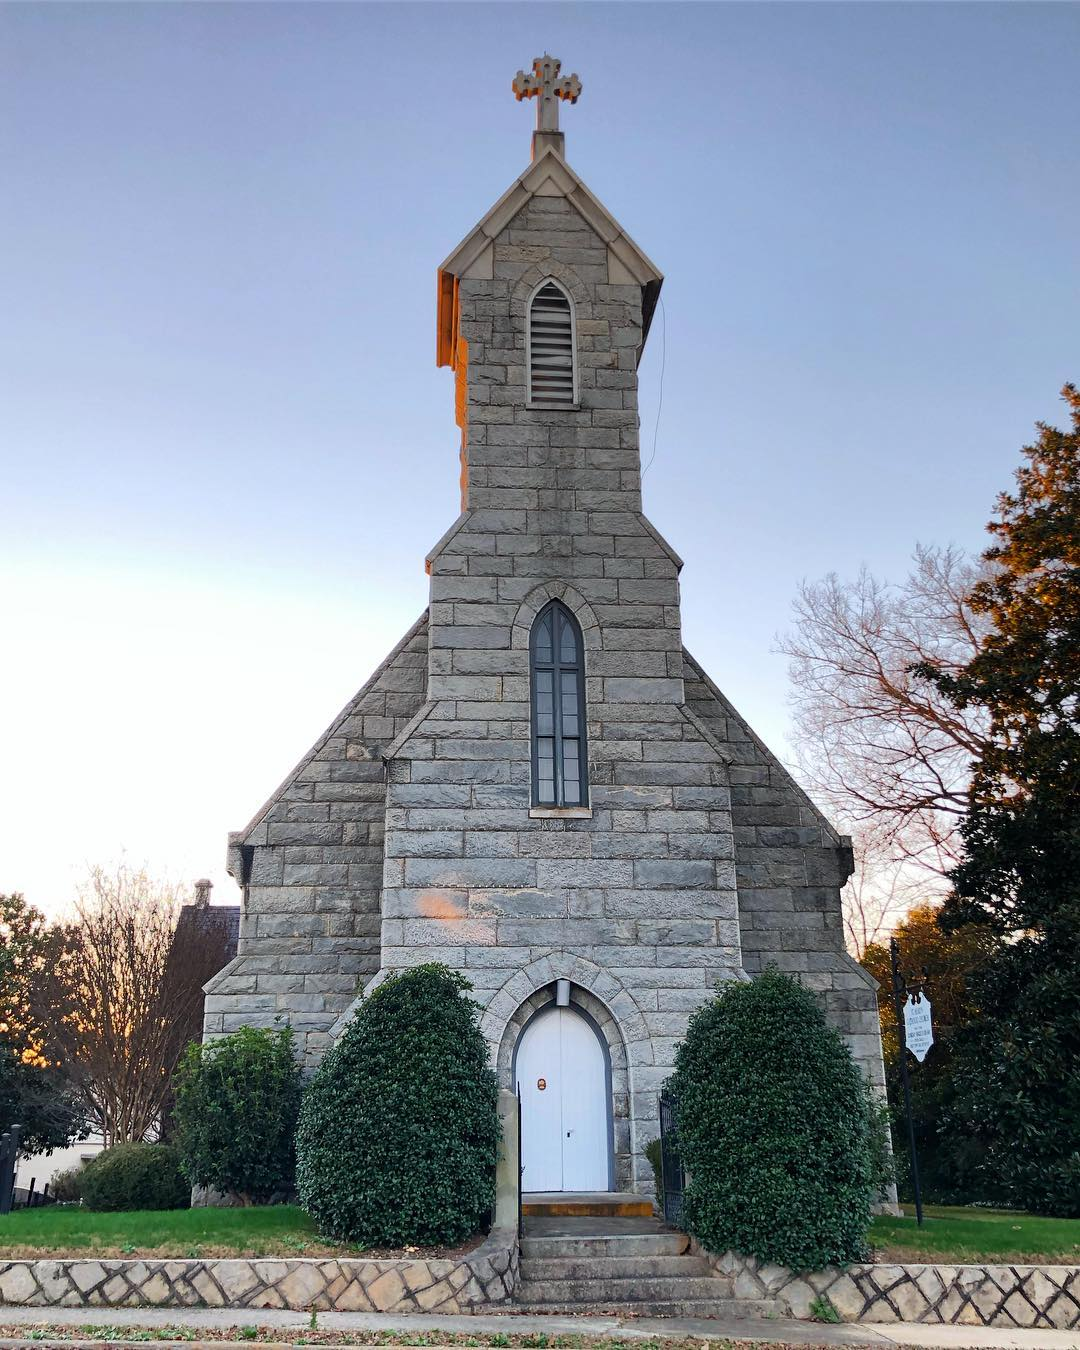 St. Mary's Catholic Church was Constructed in 1858